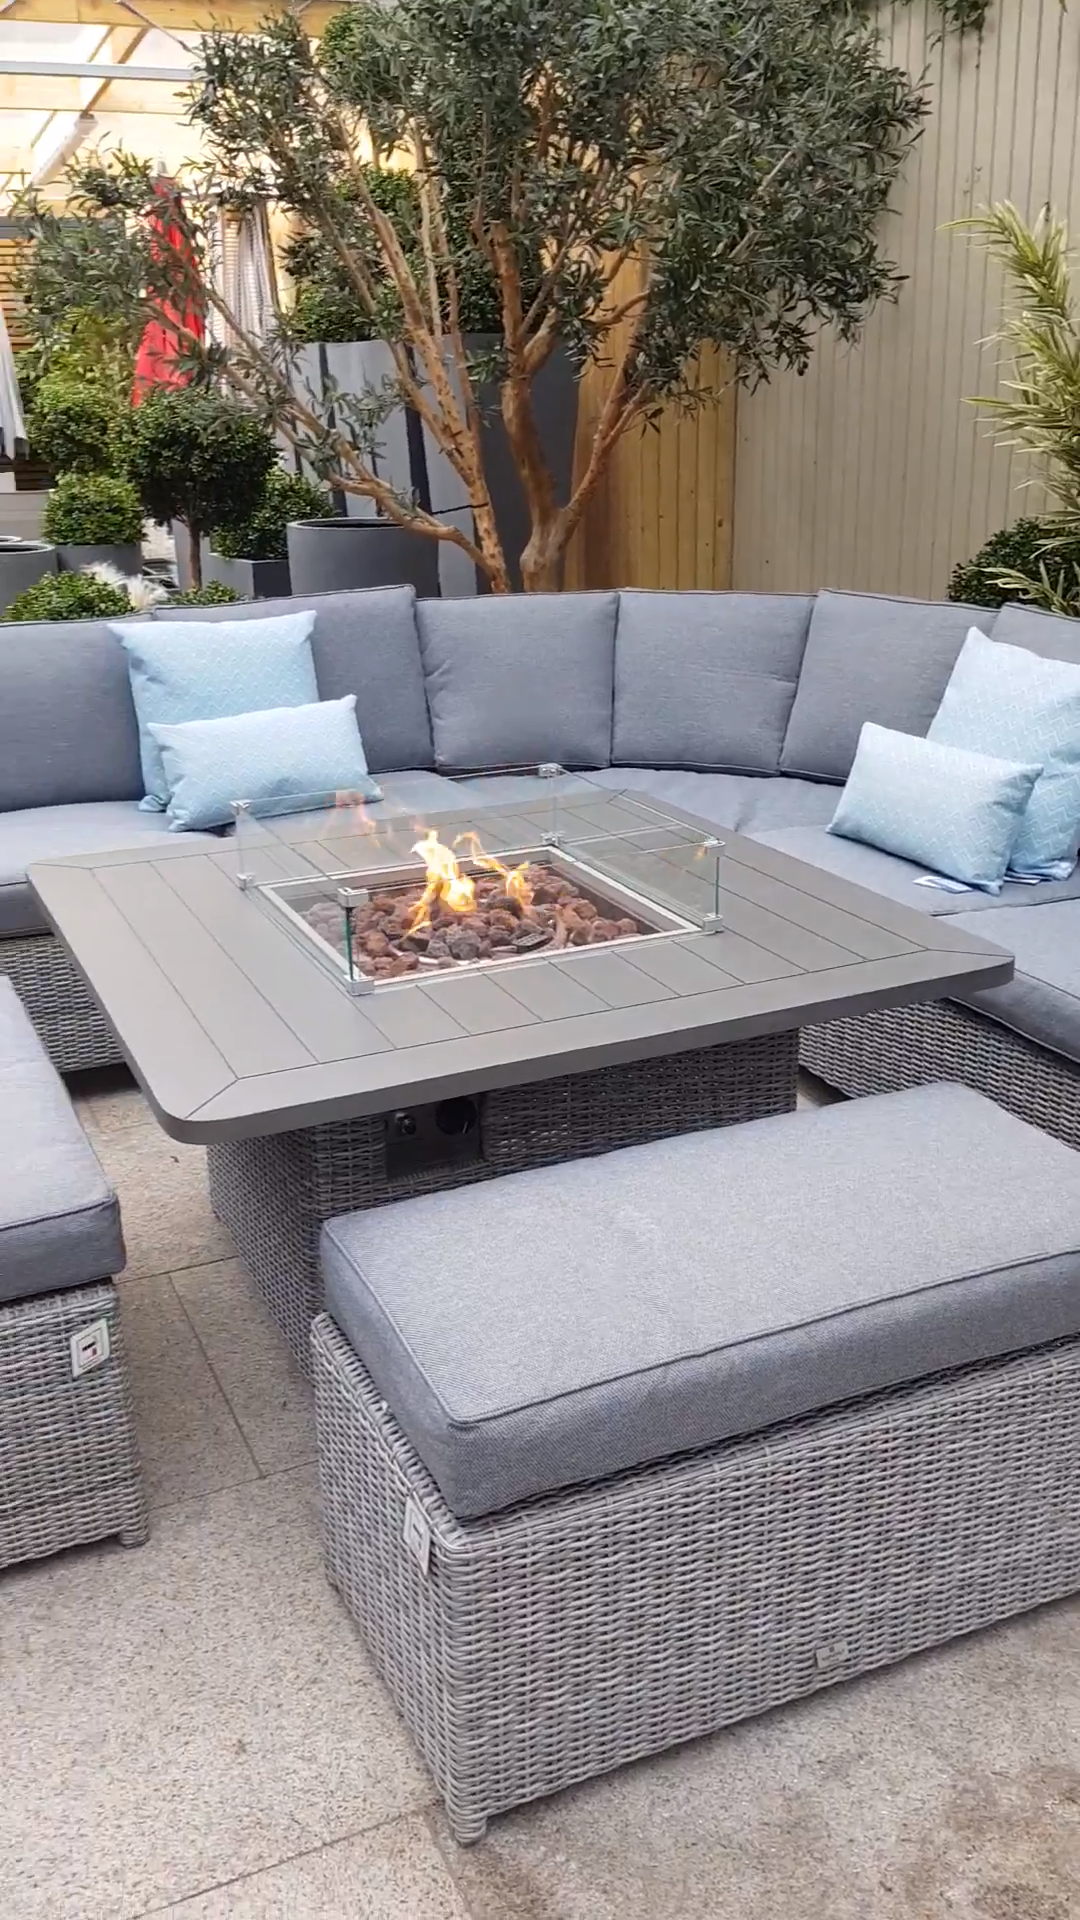 Photo of Garden furniture with fire pit